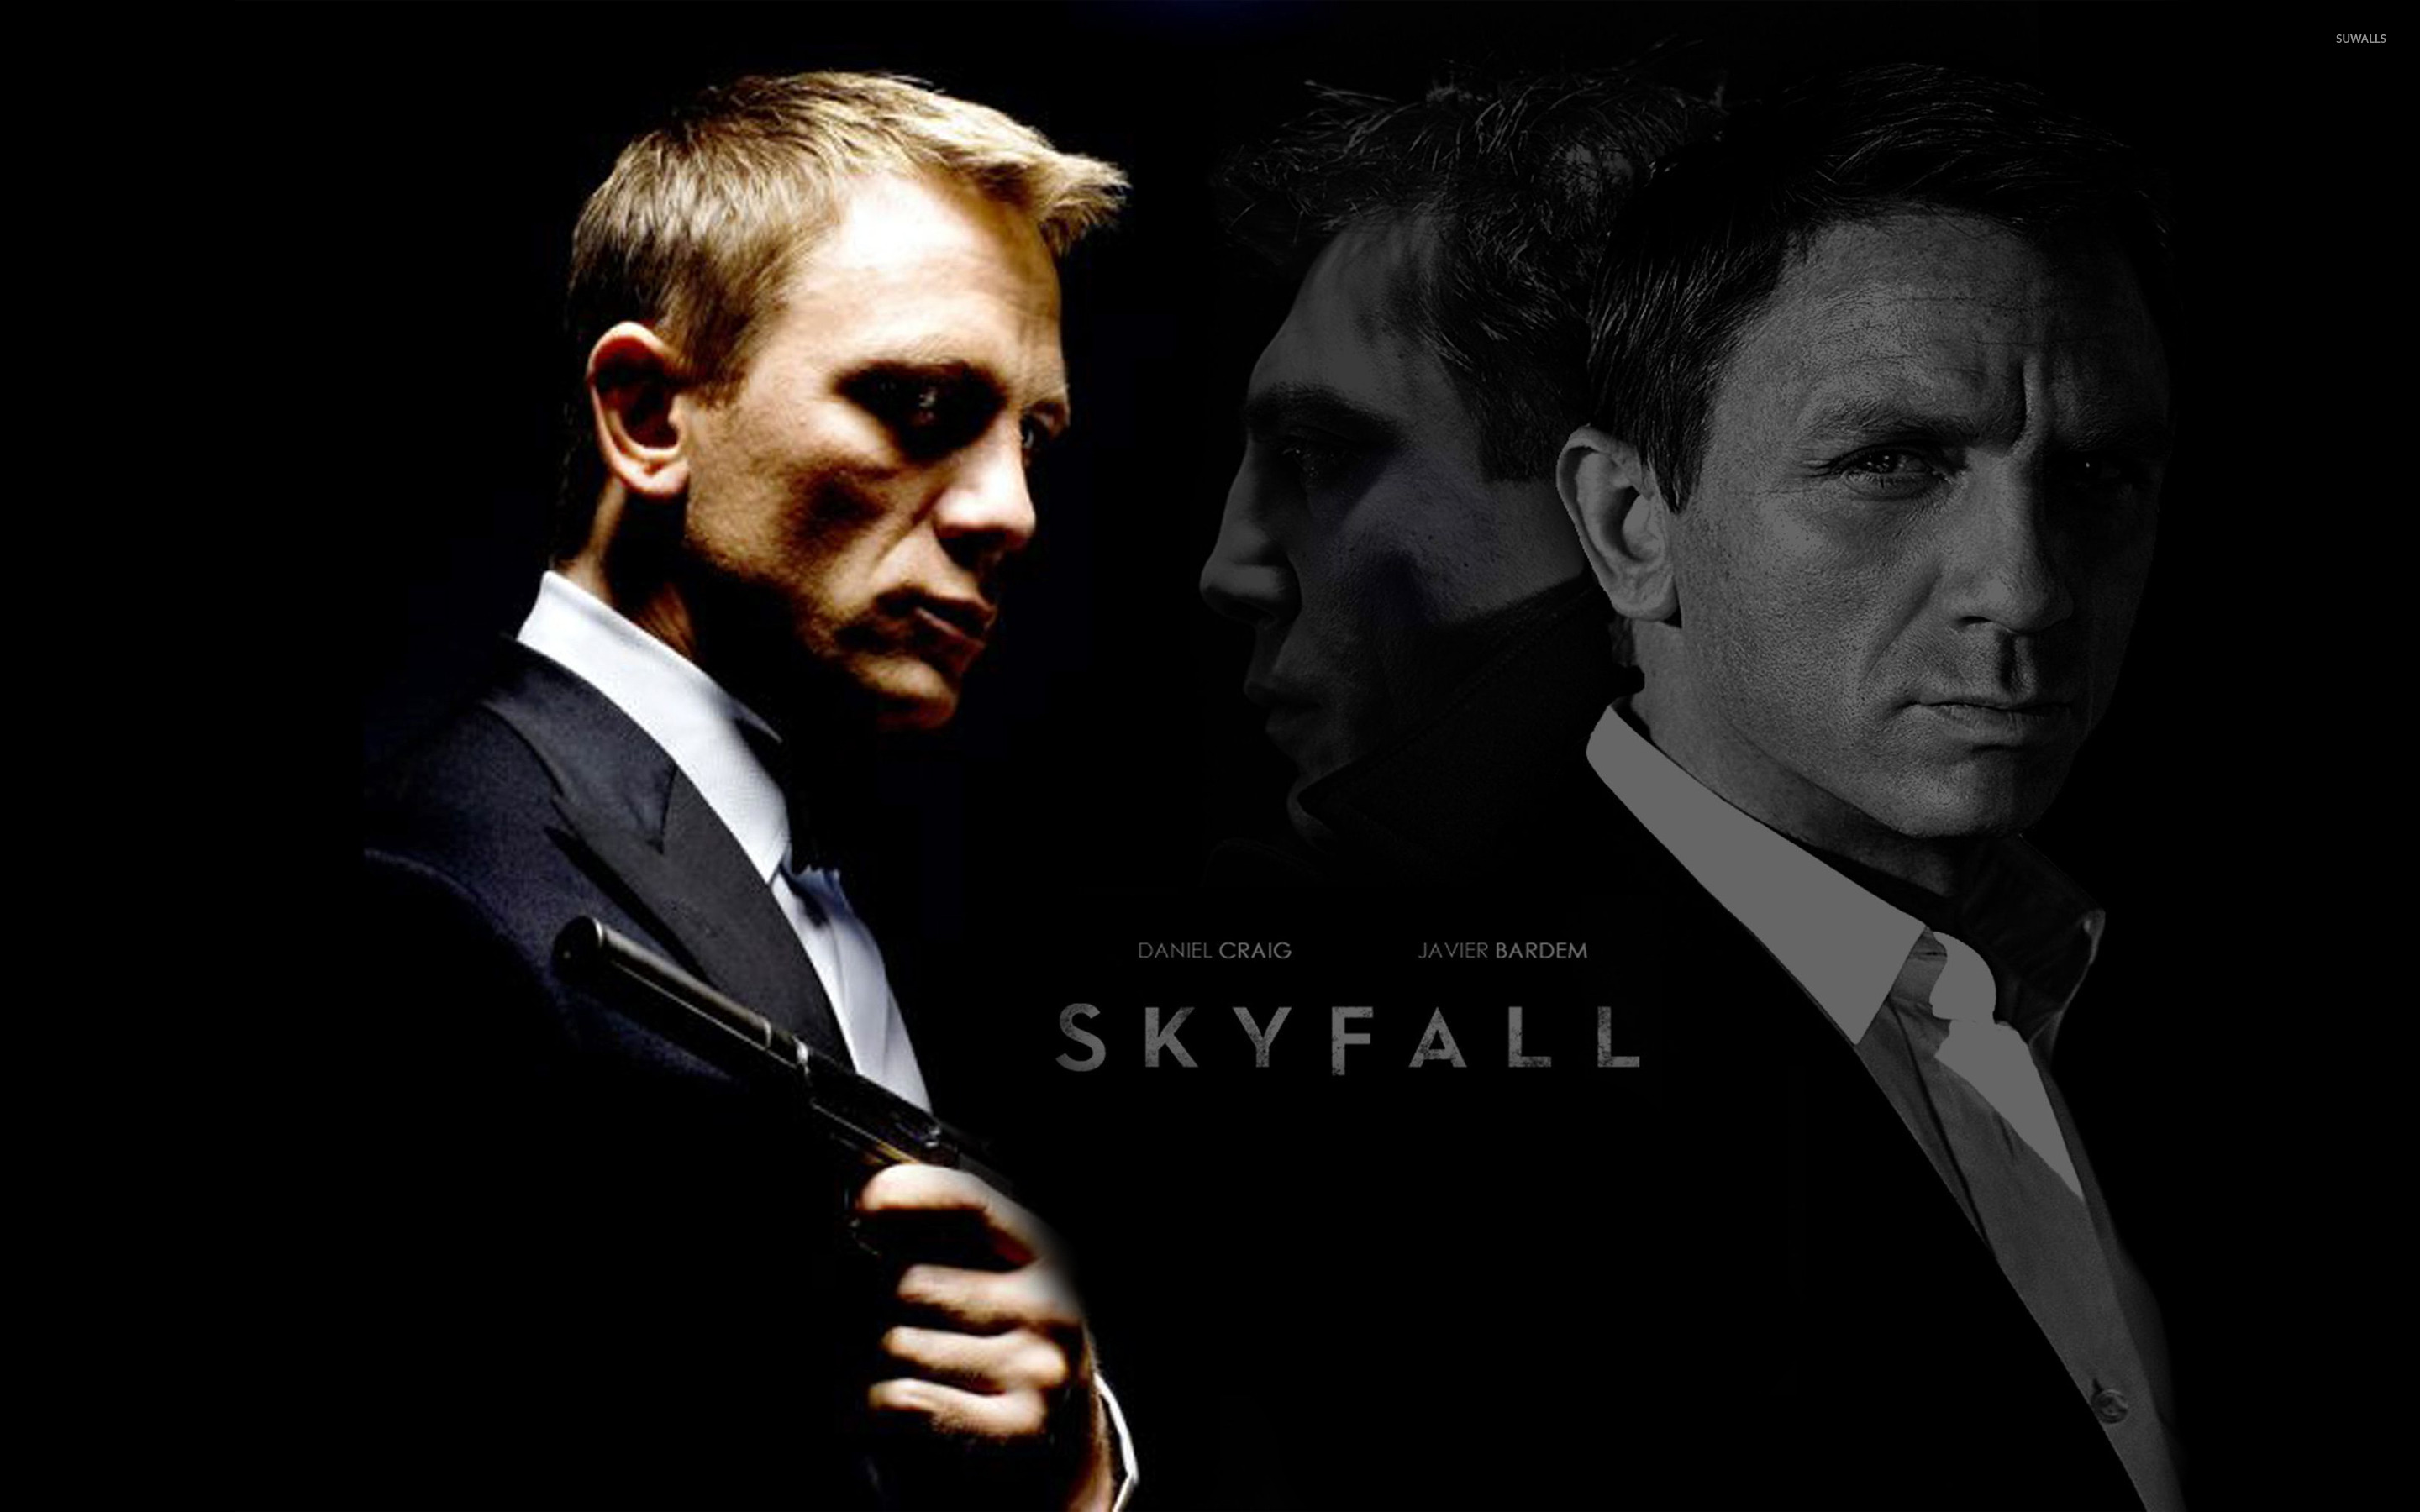 james bond - skyfall [7] wallpaper - movie wallpapers - #16168